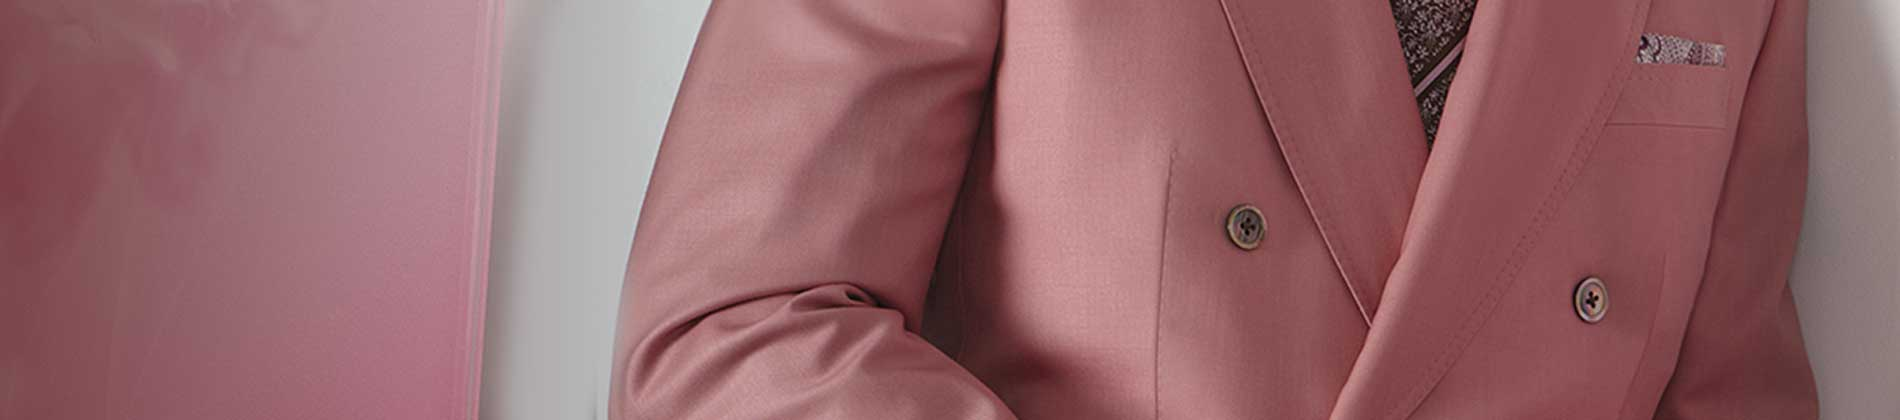 100% pure Cashmere fabric from Gladson New York